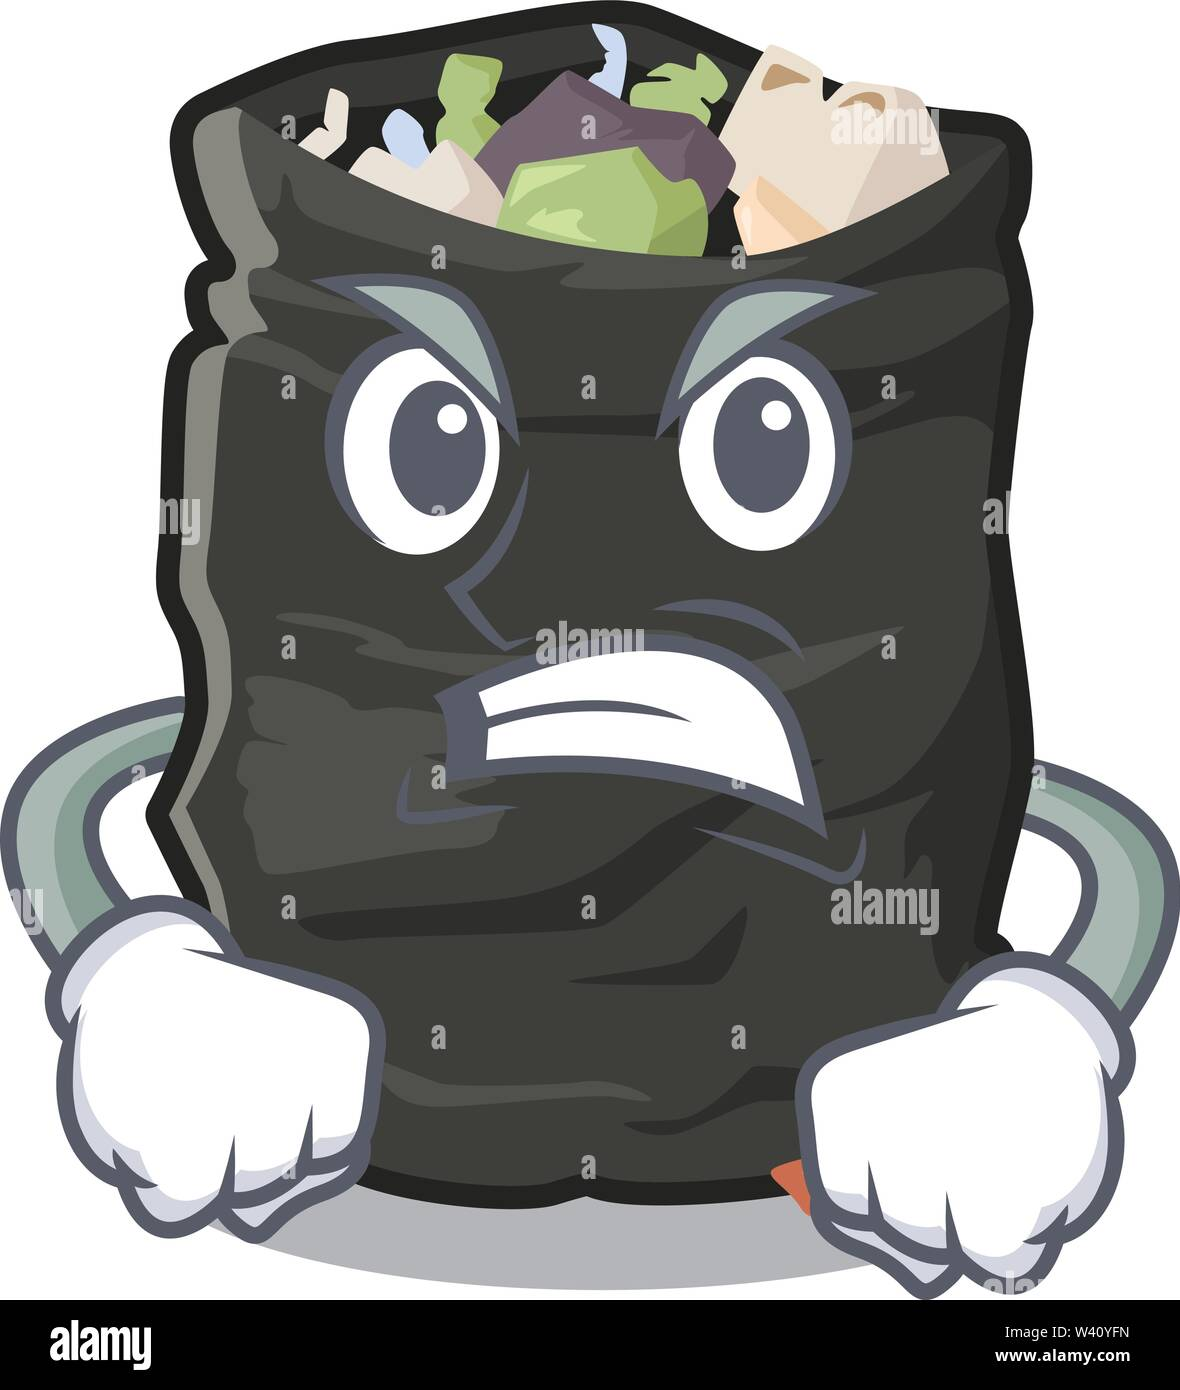 Angry cartoon garbage bag next to table vector illustration - Stock Image